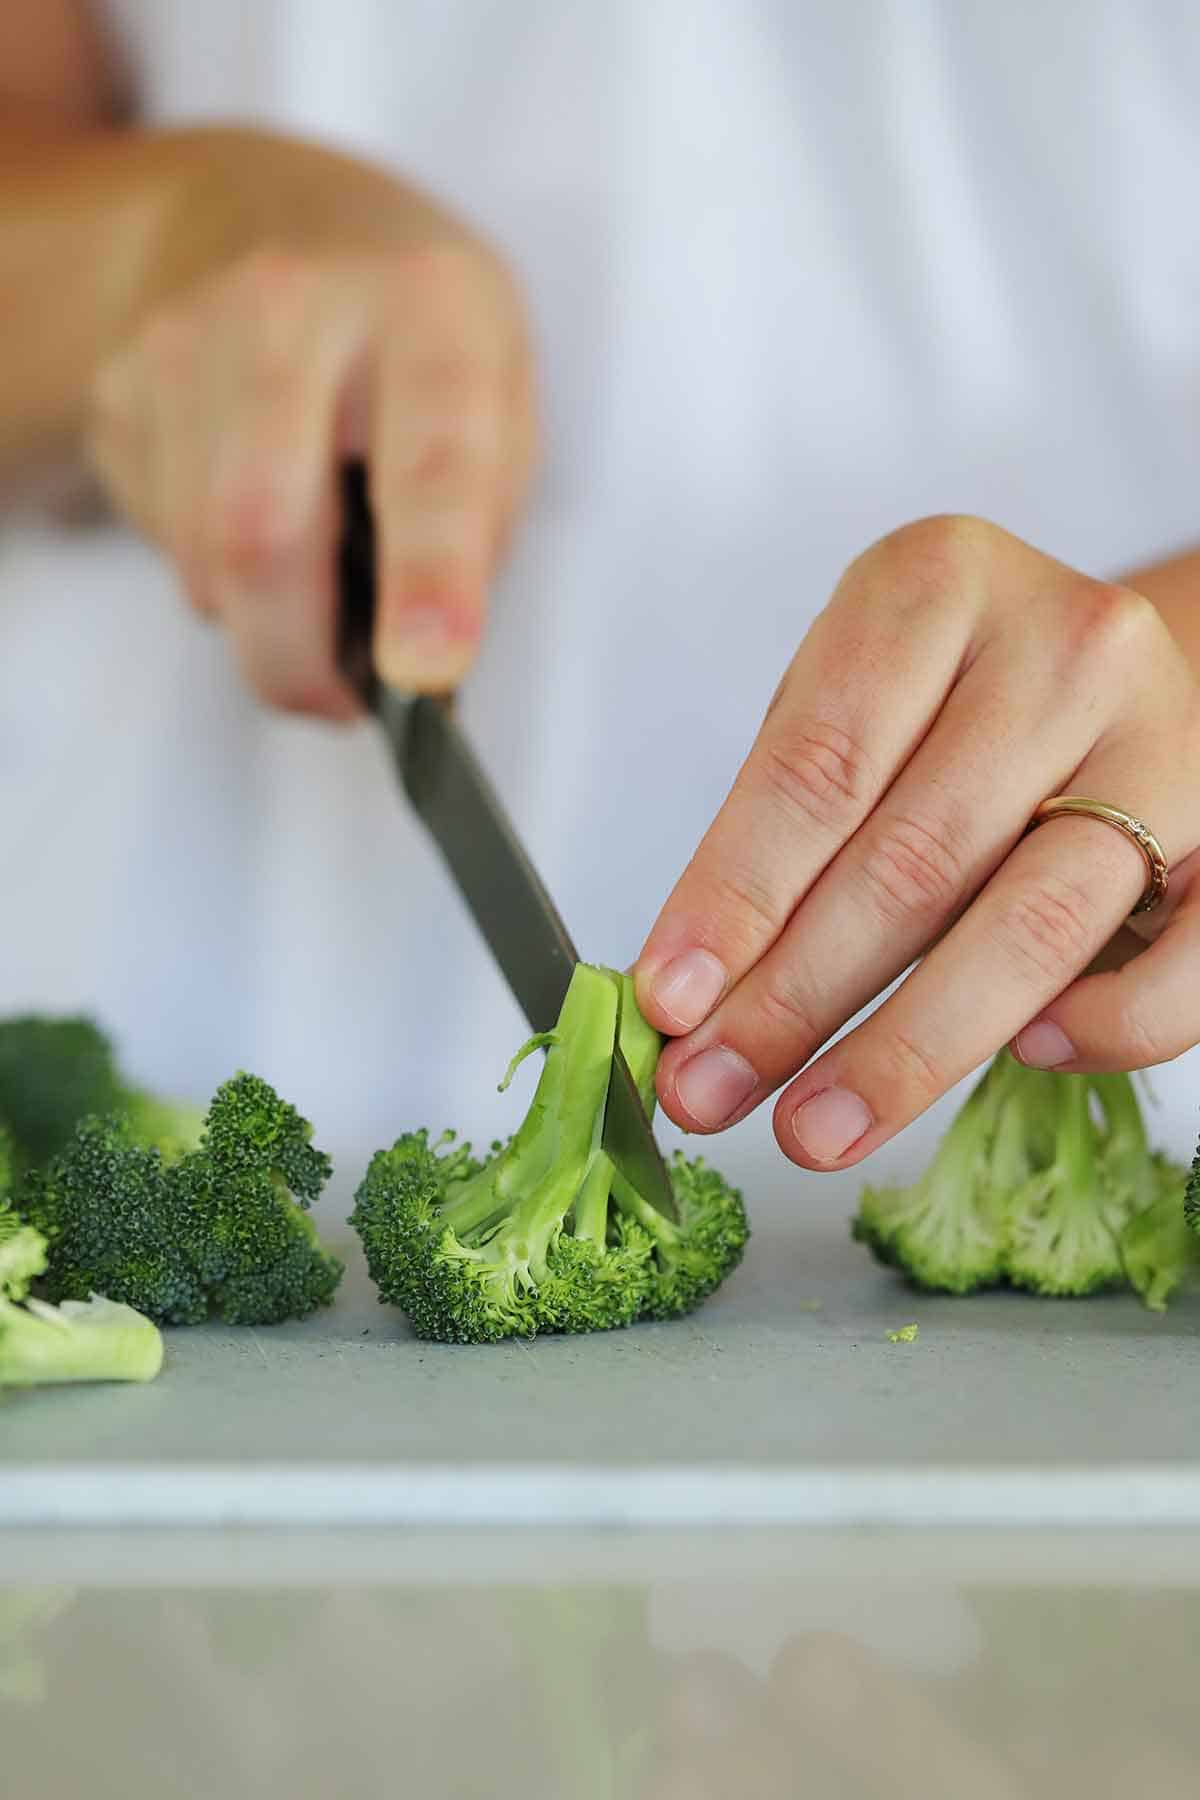 Slicing a floret of broccoli in half.